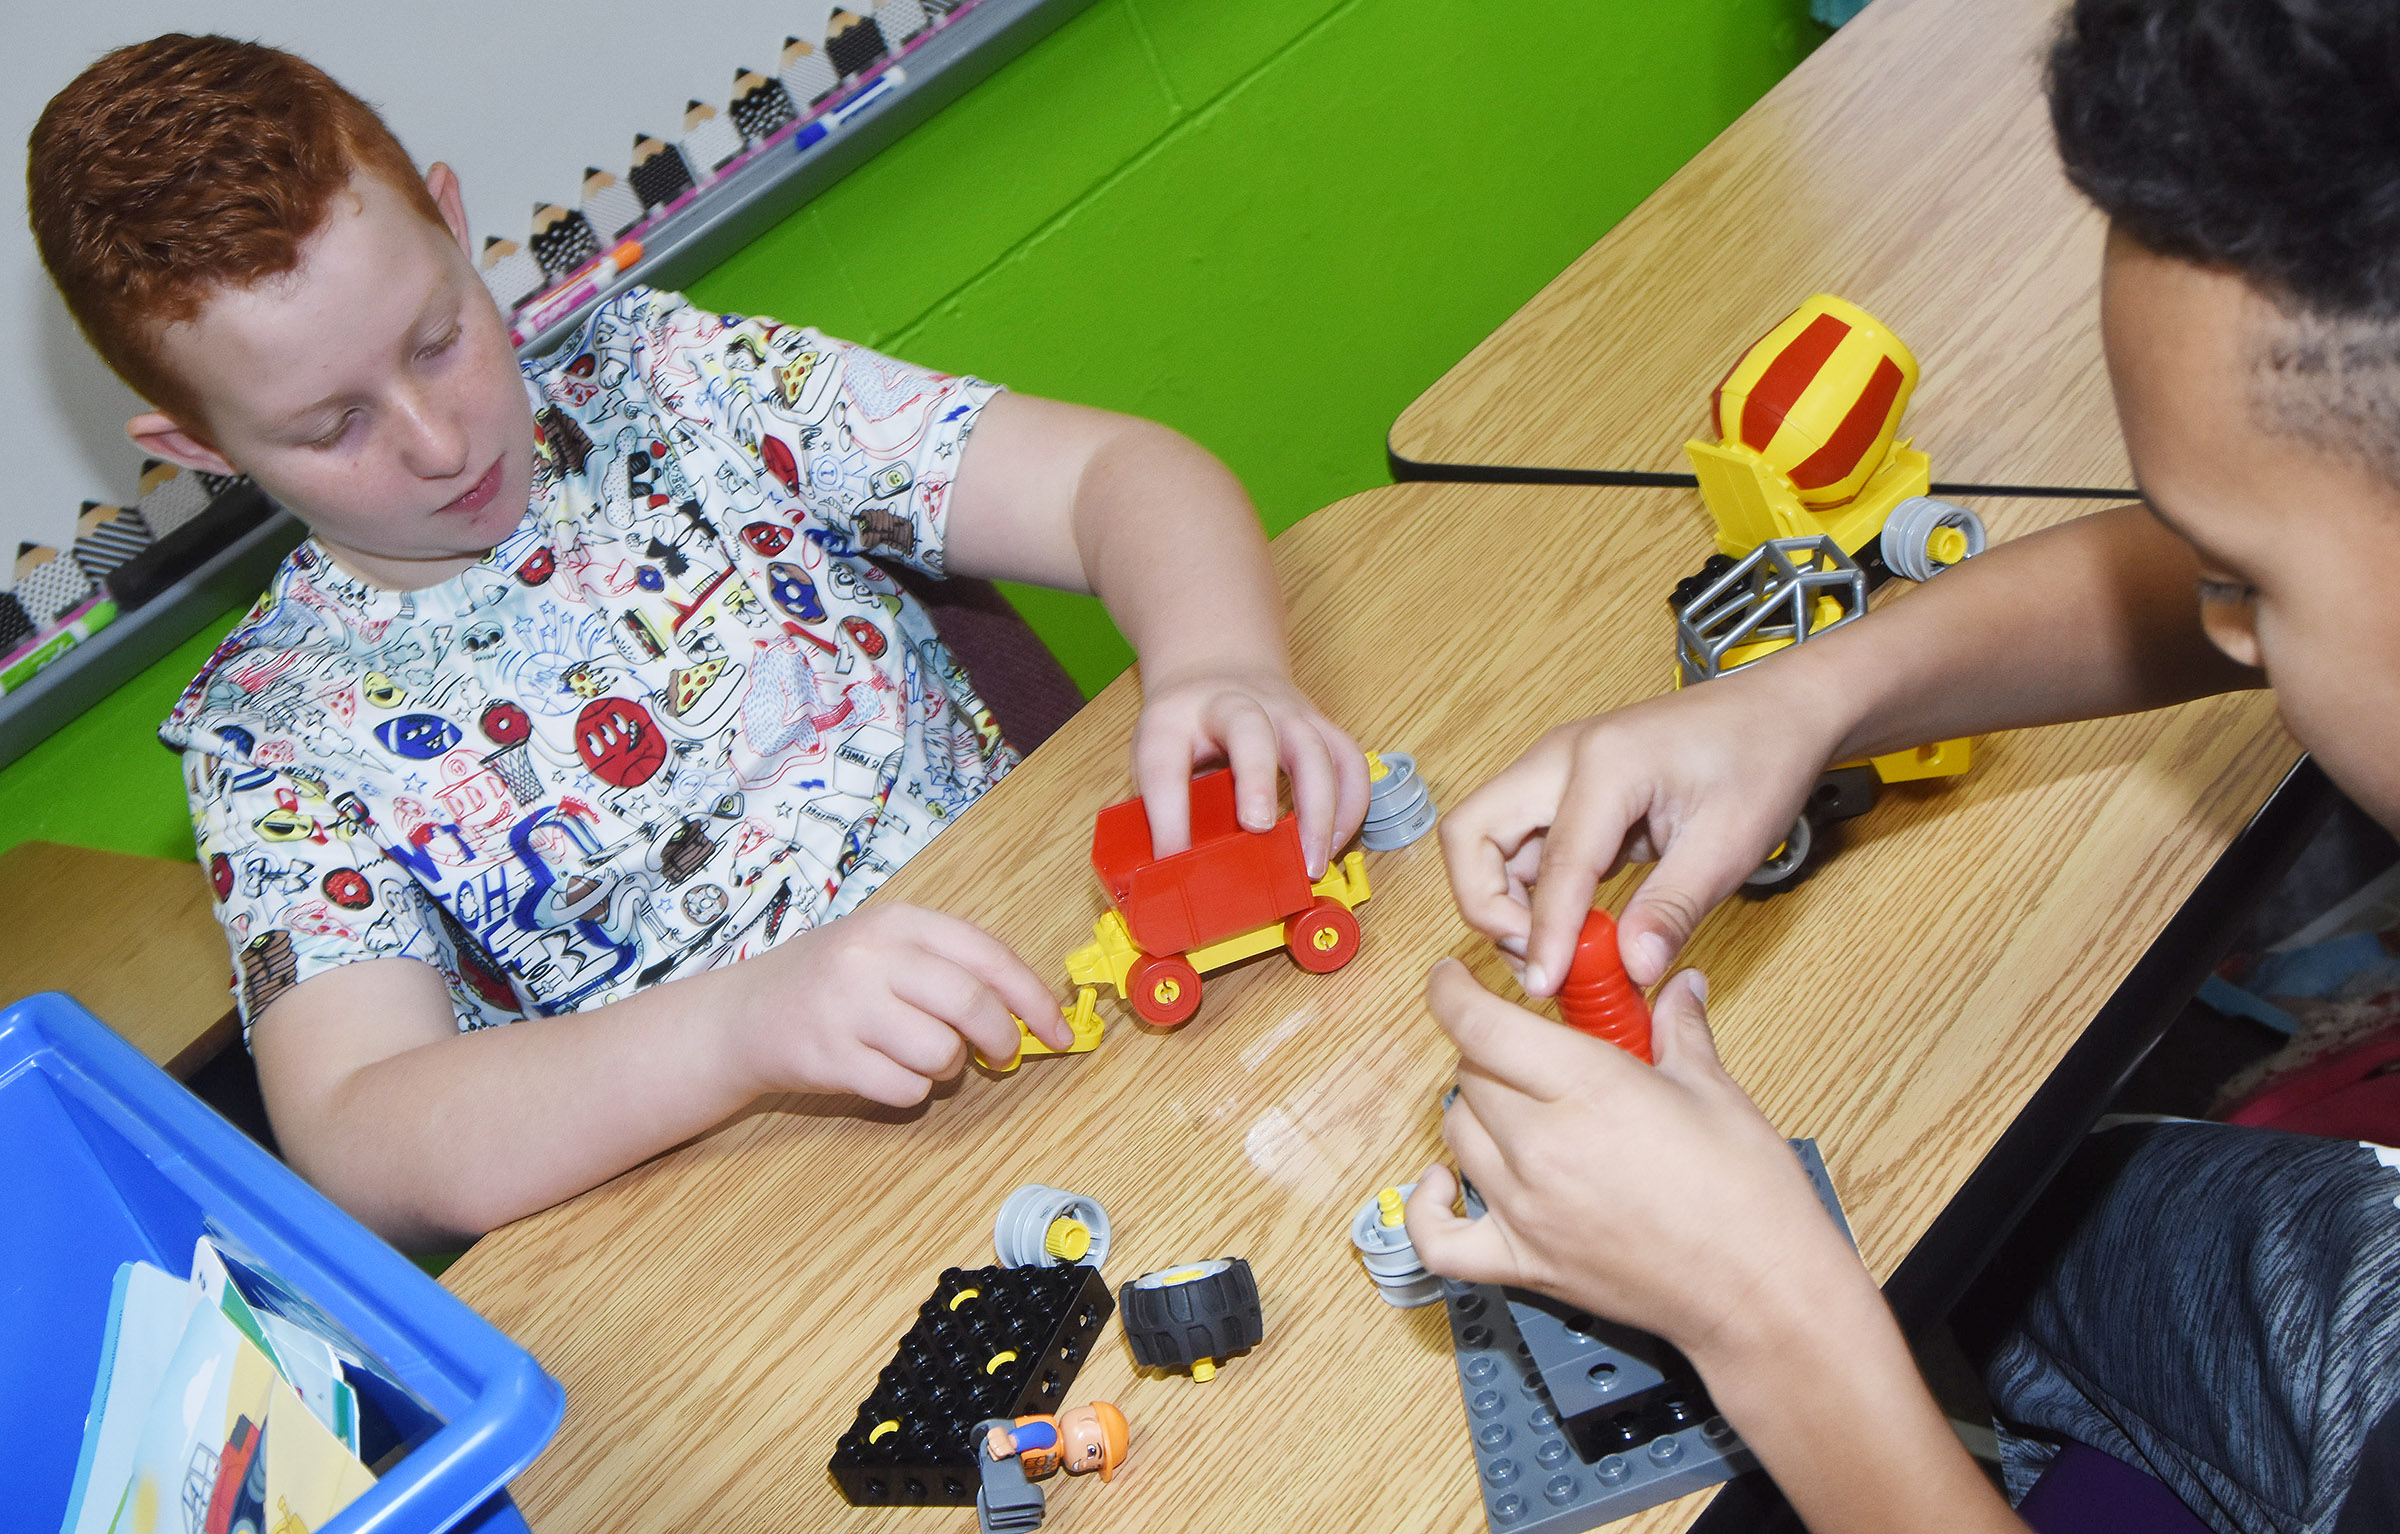 CES fourth-graders Reece Swafford, at left, and Maddox Hawkins build with Legos.